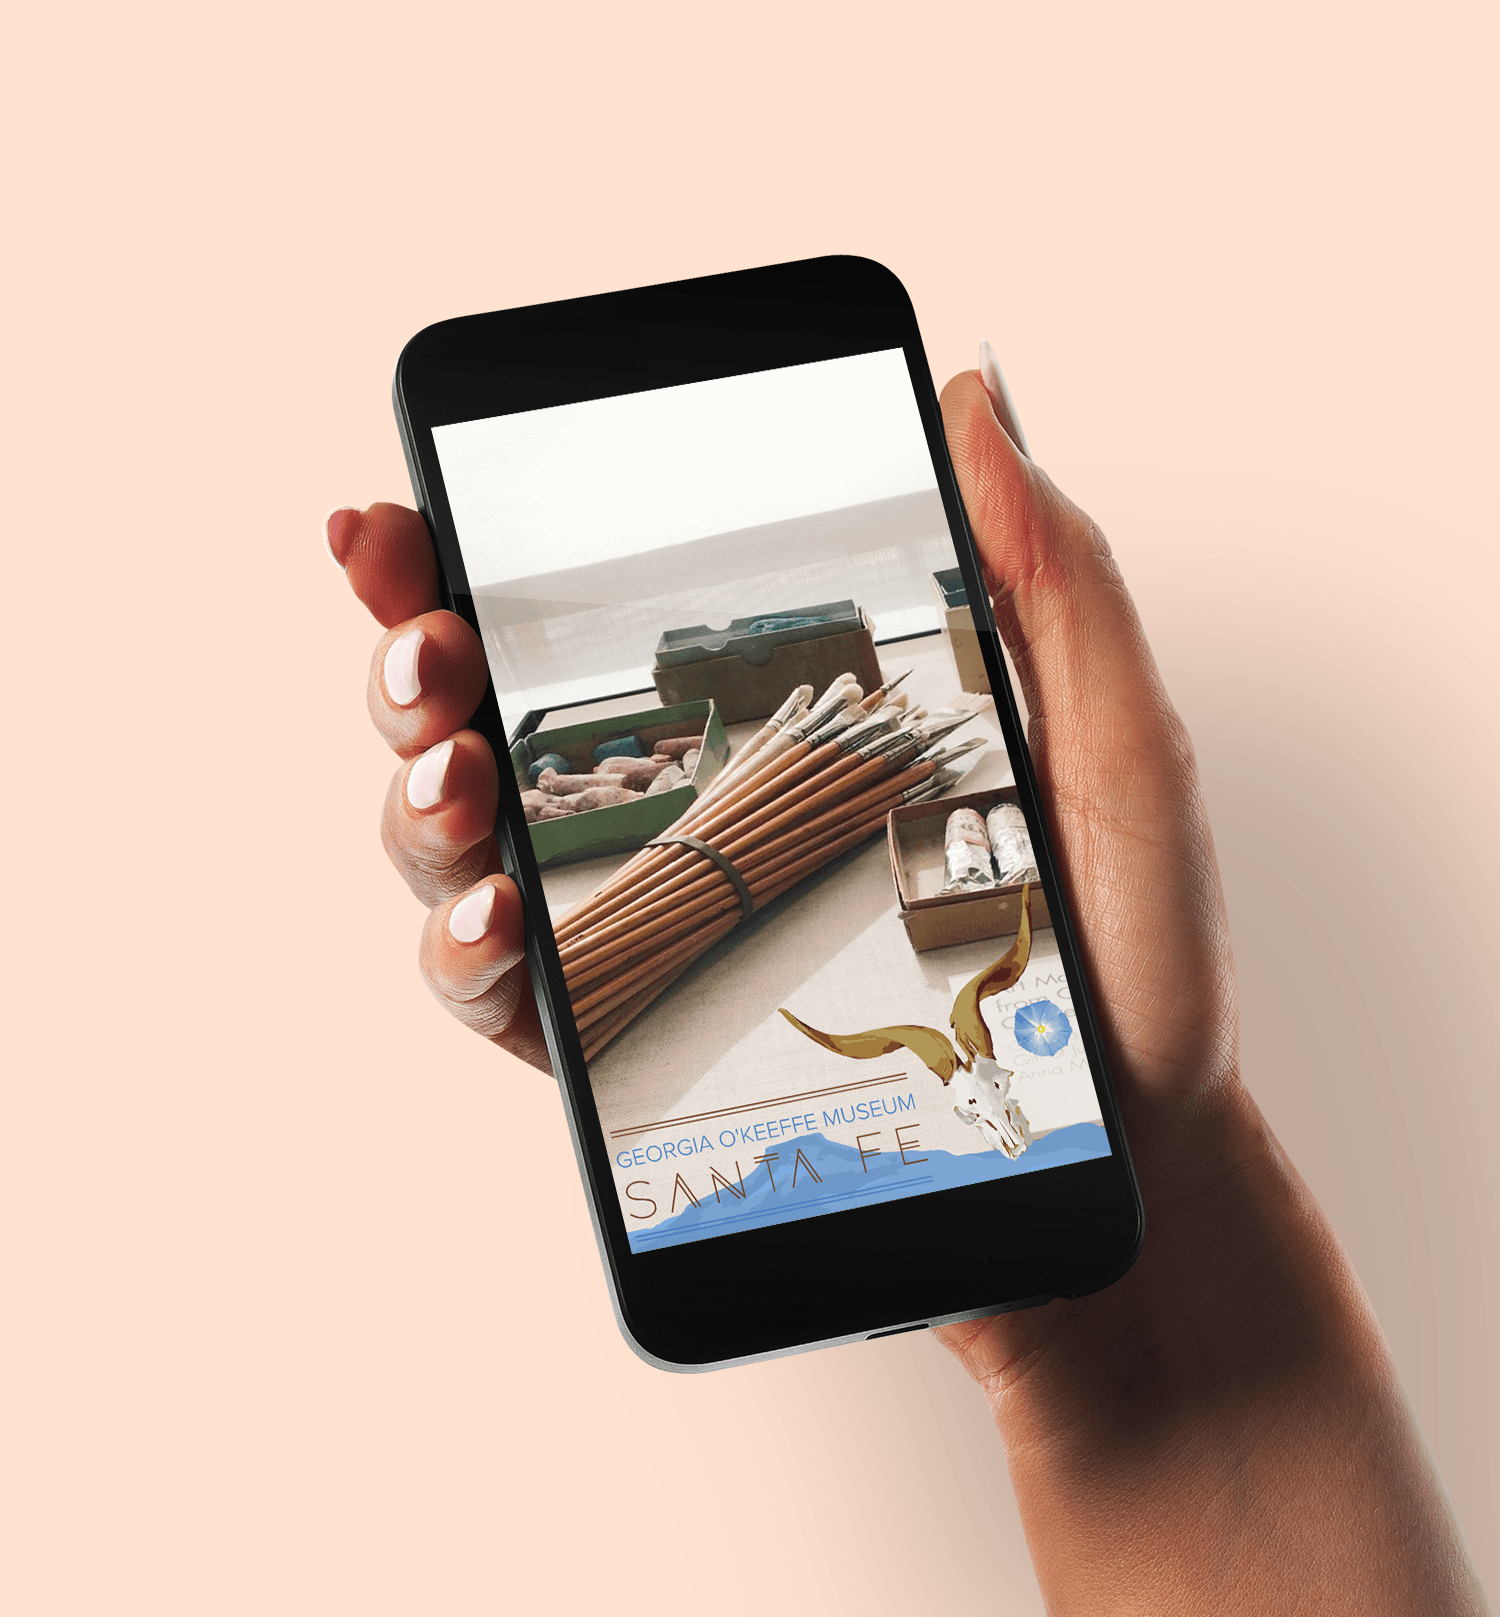 Snapchat filter for The Georgia O'Keeffe Musuem